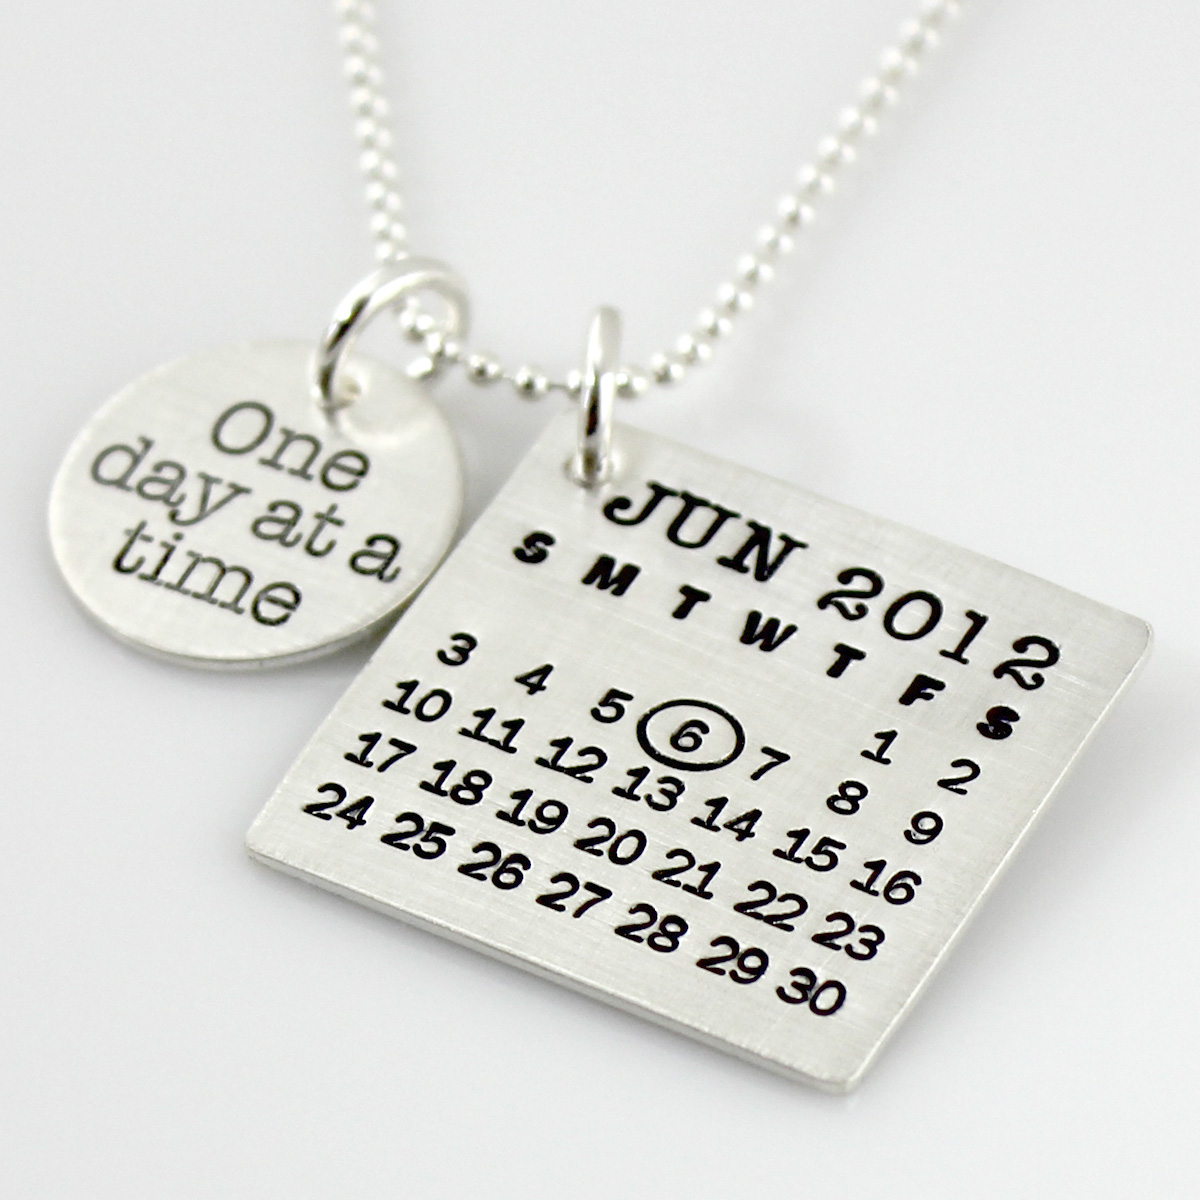 Mark Your Calendar Necklace with 'One day at a time' Charm